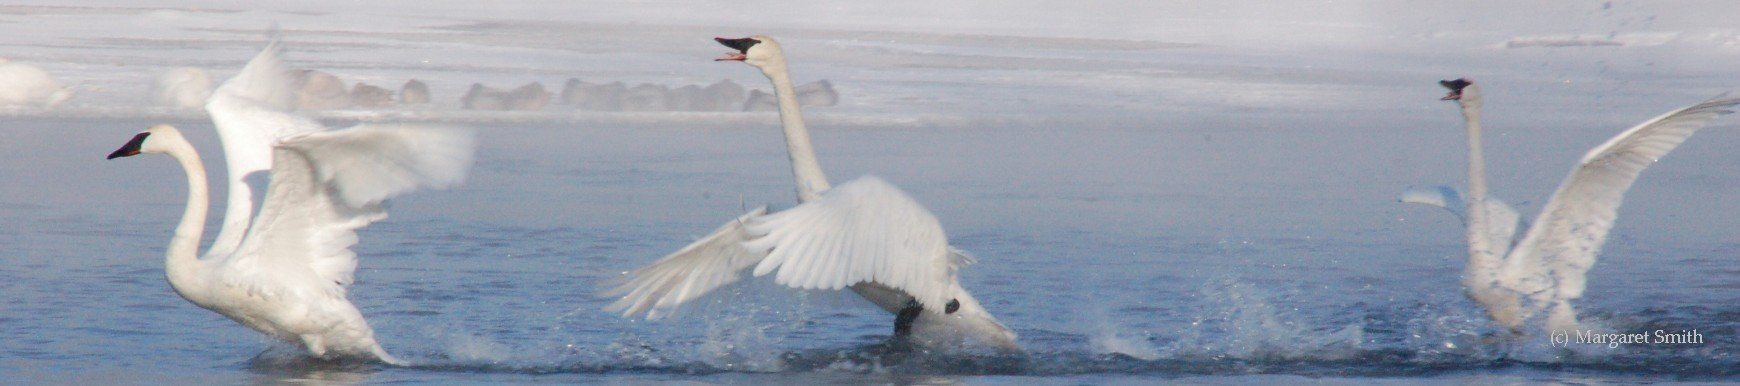 Trumpeter Swans have a distinctive bugle trumpet call